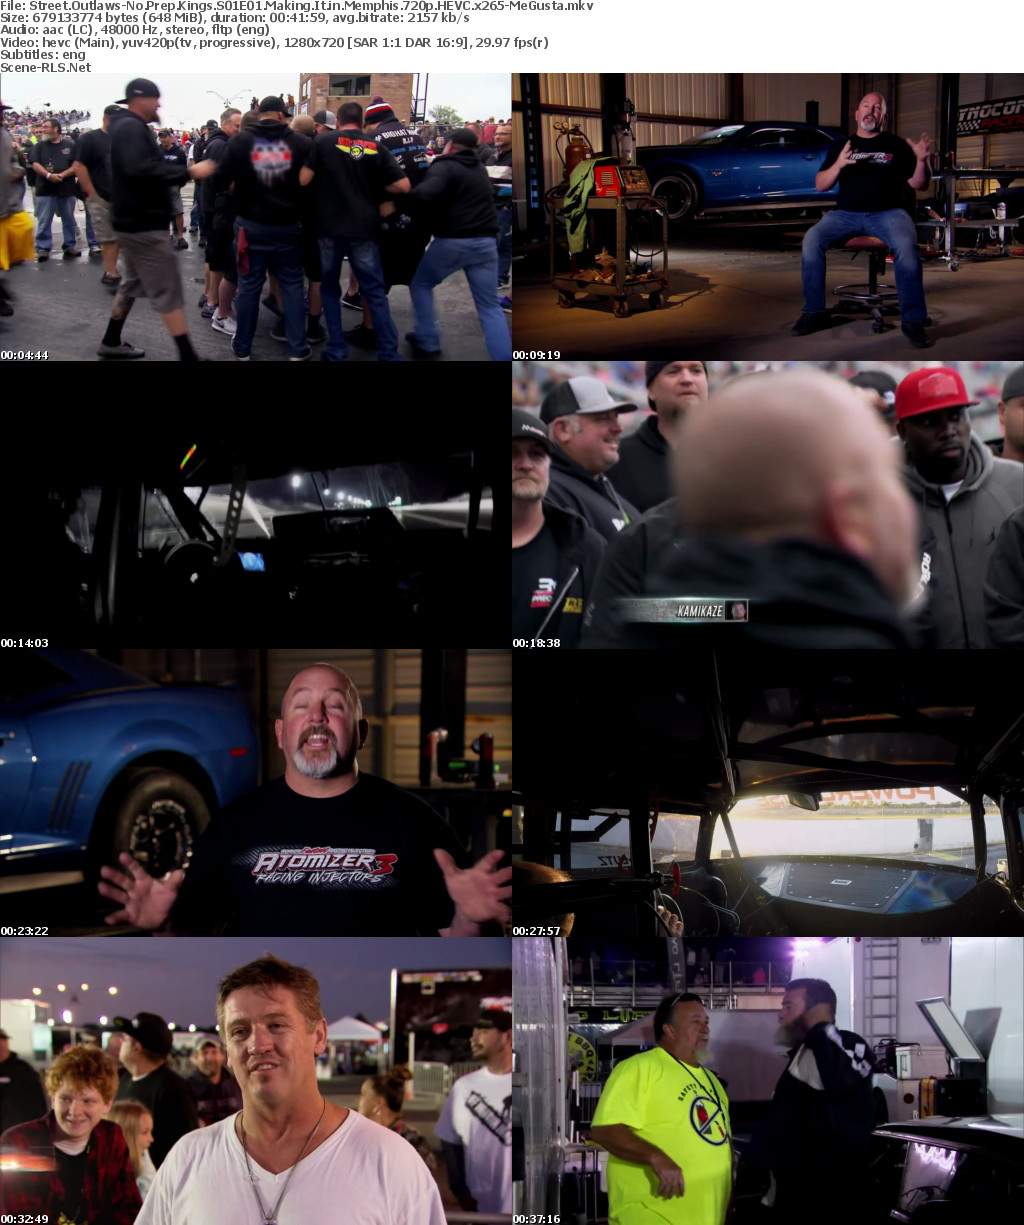 Street Outlaws-No Prep Kings S01E01 Making It in Memphis